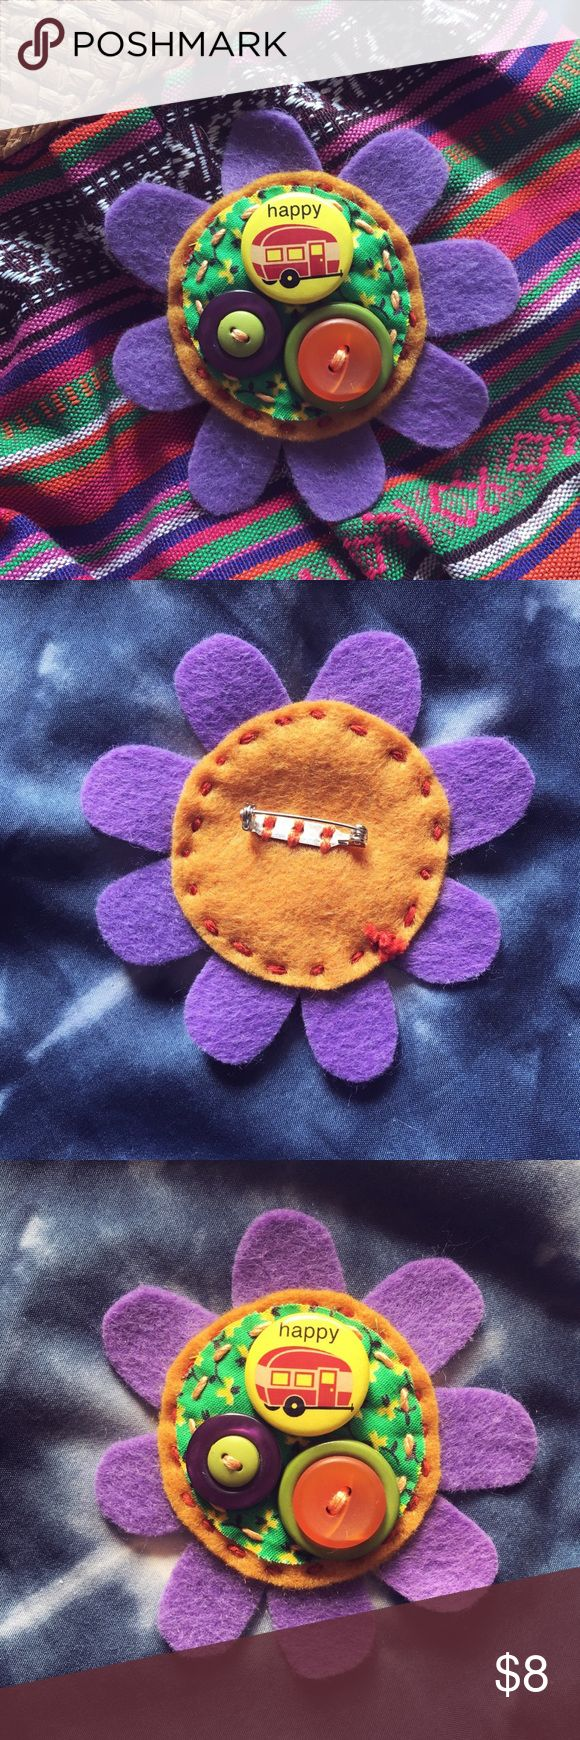 """Handmade Hippie Daisy Brooch A pin/Brooch handmade by me! Made with felt, funky daisy fabric and buttons and a pin that reads """"happy camper""""! This is perfect to pin on your backpack or purse and share the hippie, boho, bohemian, festival, flower child vibes!🌼 Jewelry Brooches"""